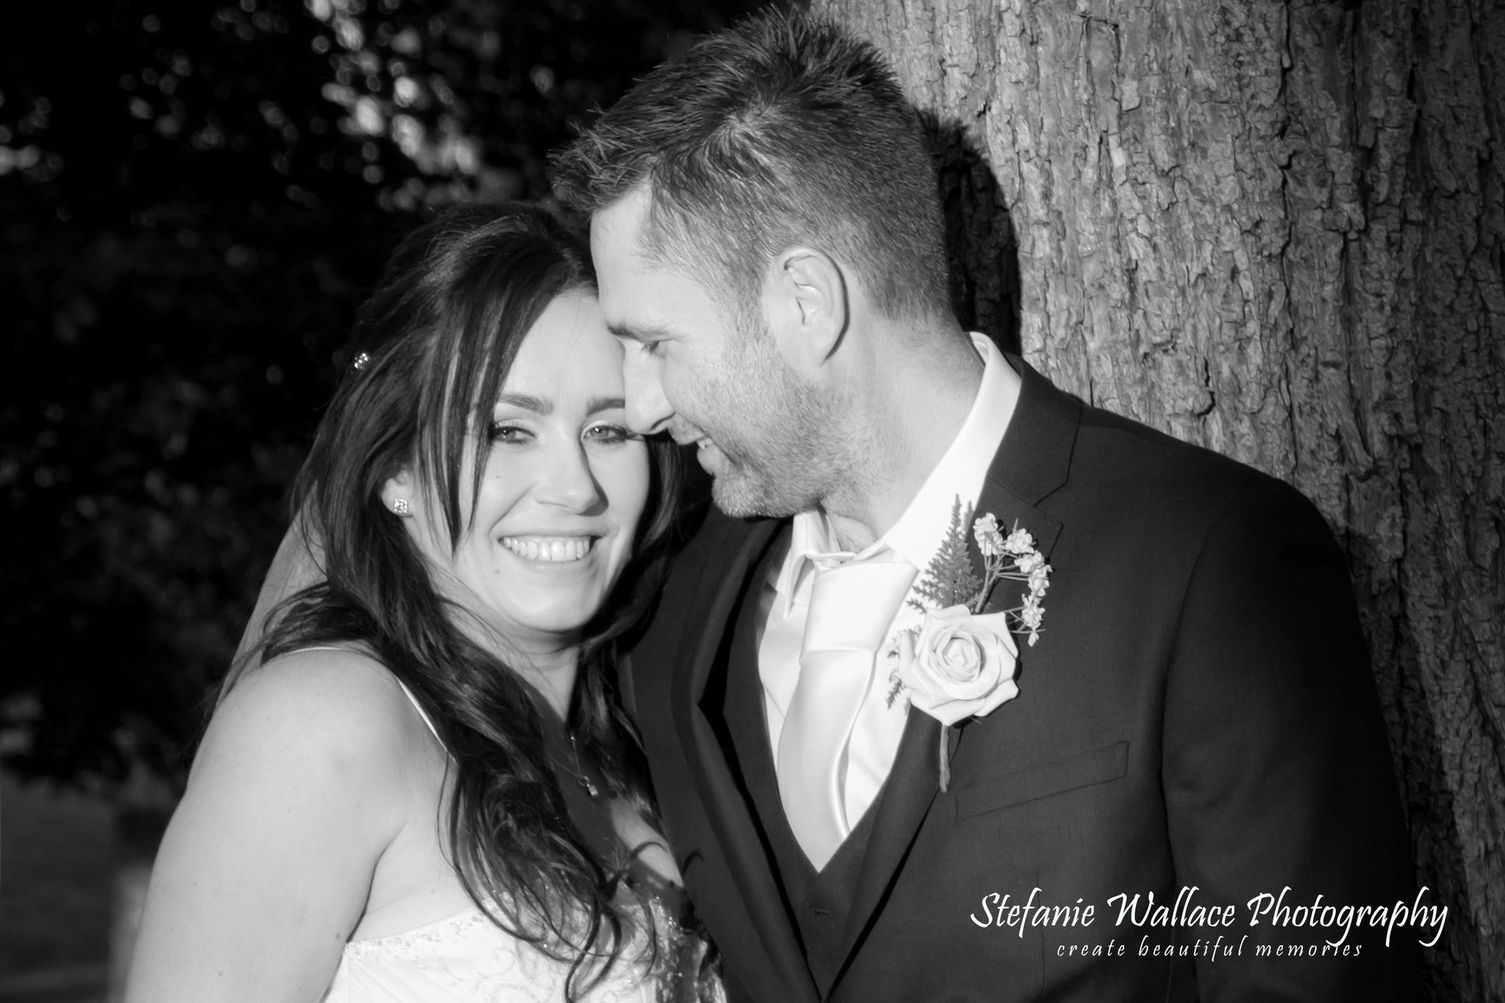 2018 Wedding Couple 15 Stefanie Wallace Photography